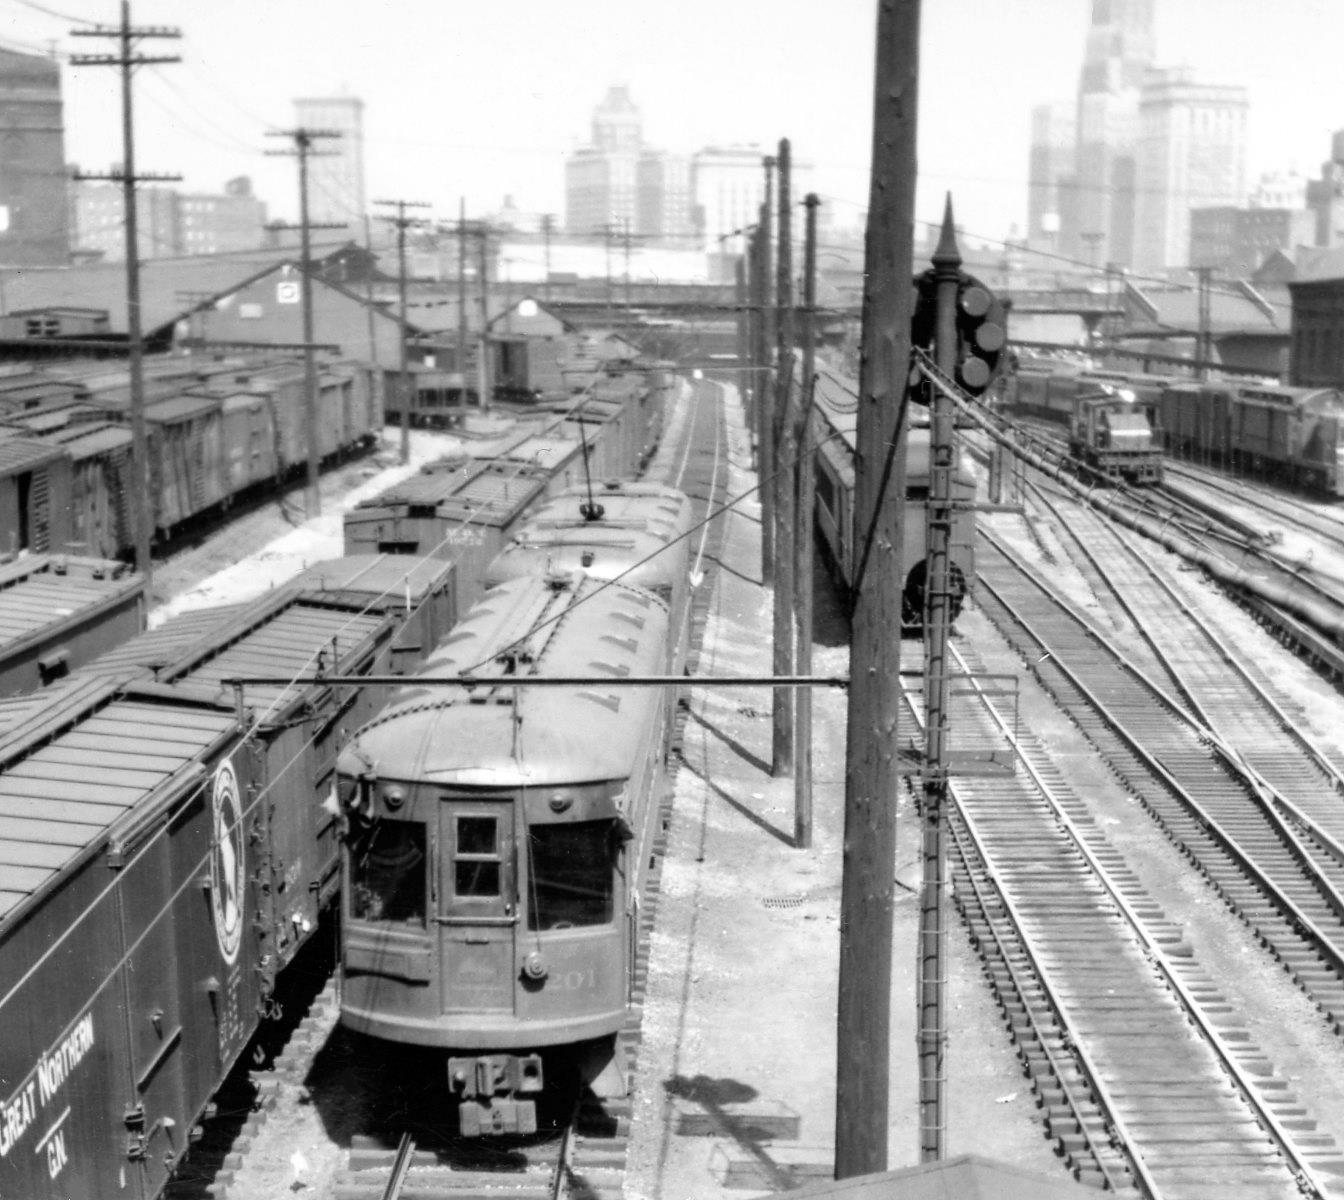 Baltimore & Annapolis Railroad Car #201 Northbound into Camden Station. Baltimore, Maryland Date: October 6, 1946. Source: Lee Rogers Collection.